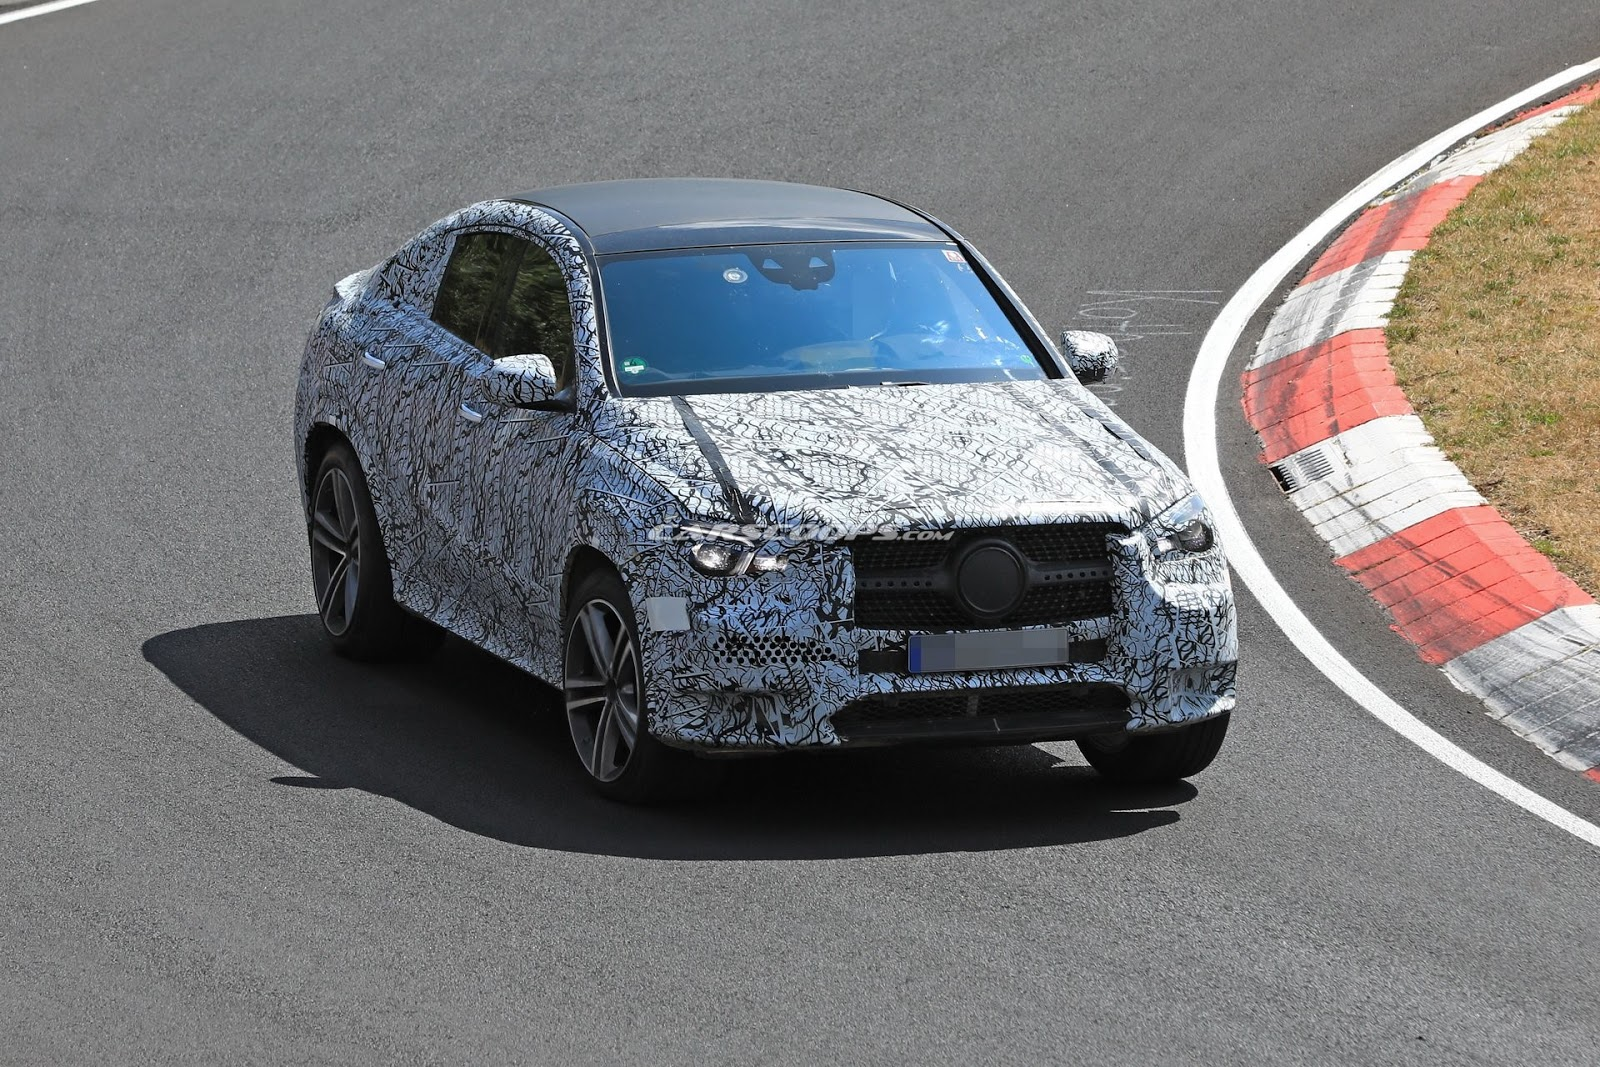 2020 Mercedes Benz Gle Coupe Spy Shot Ms Blog